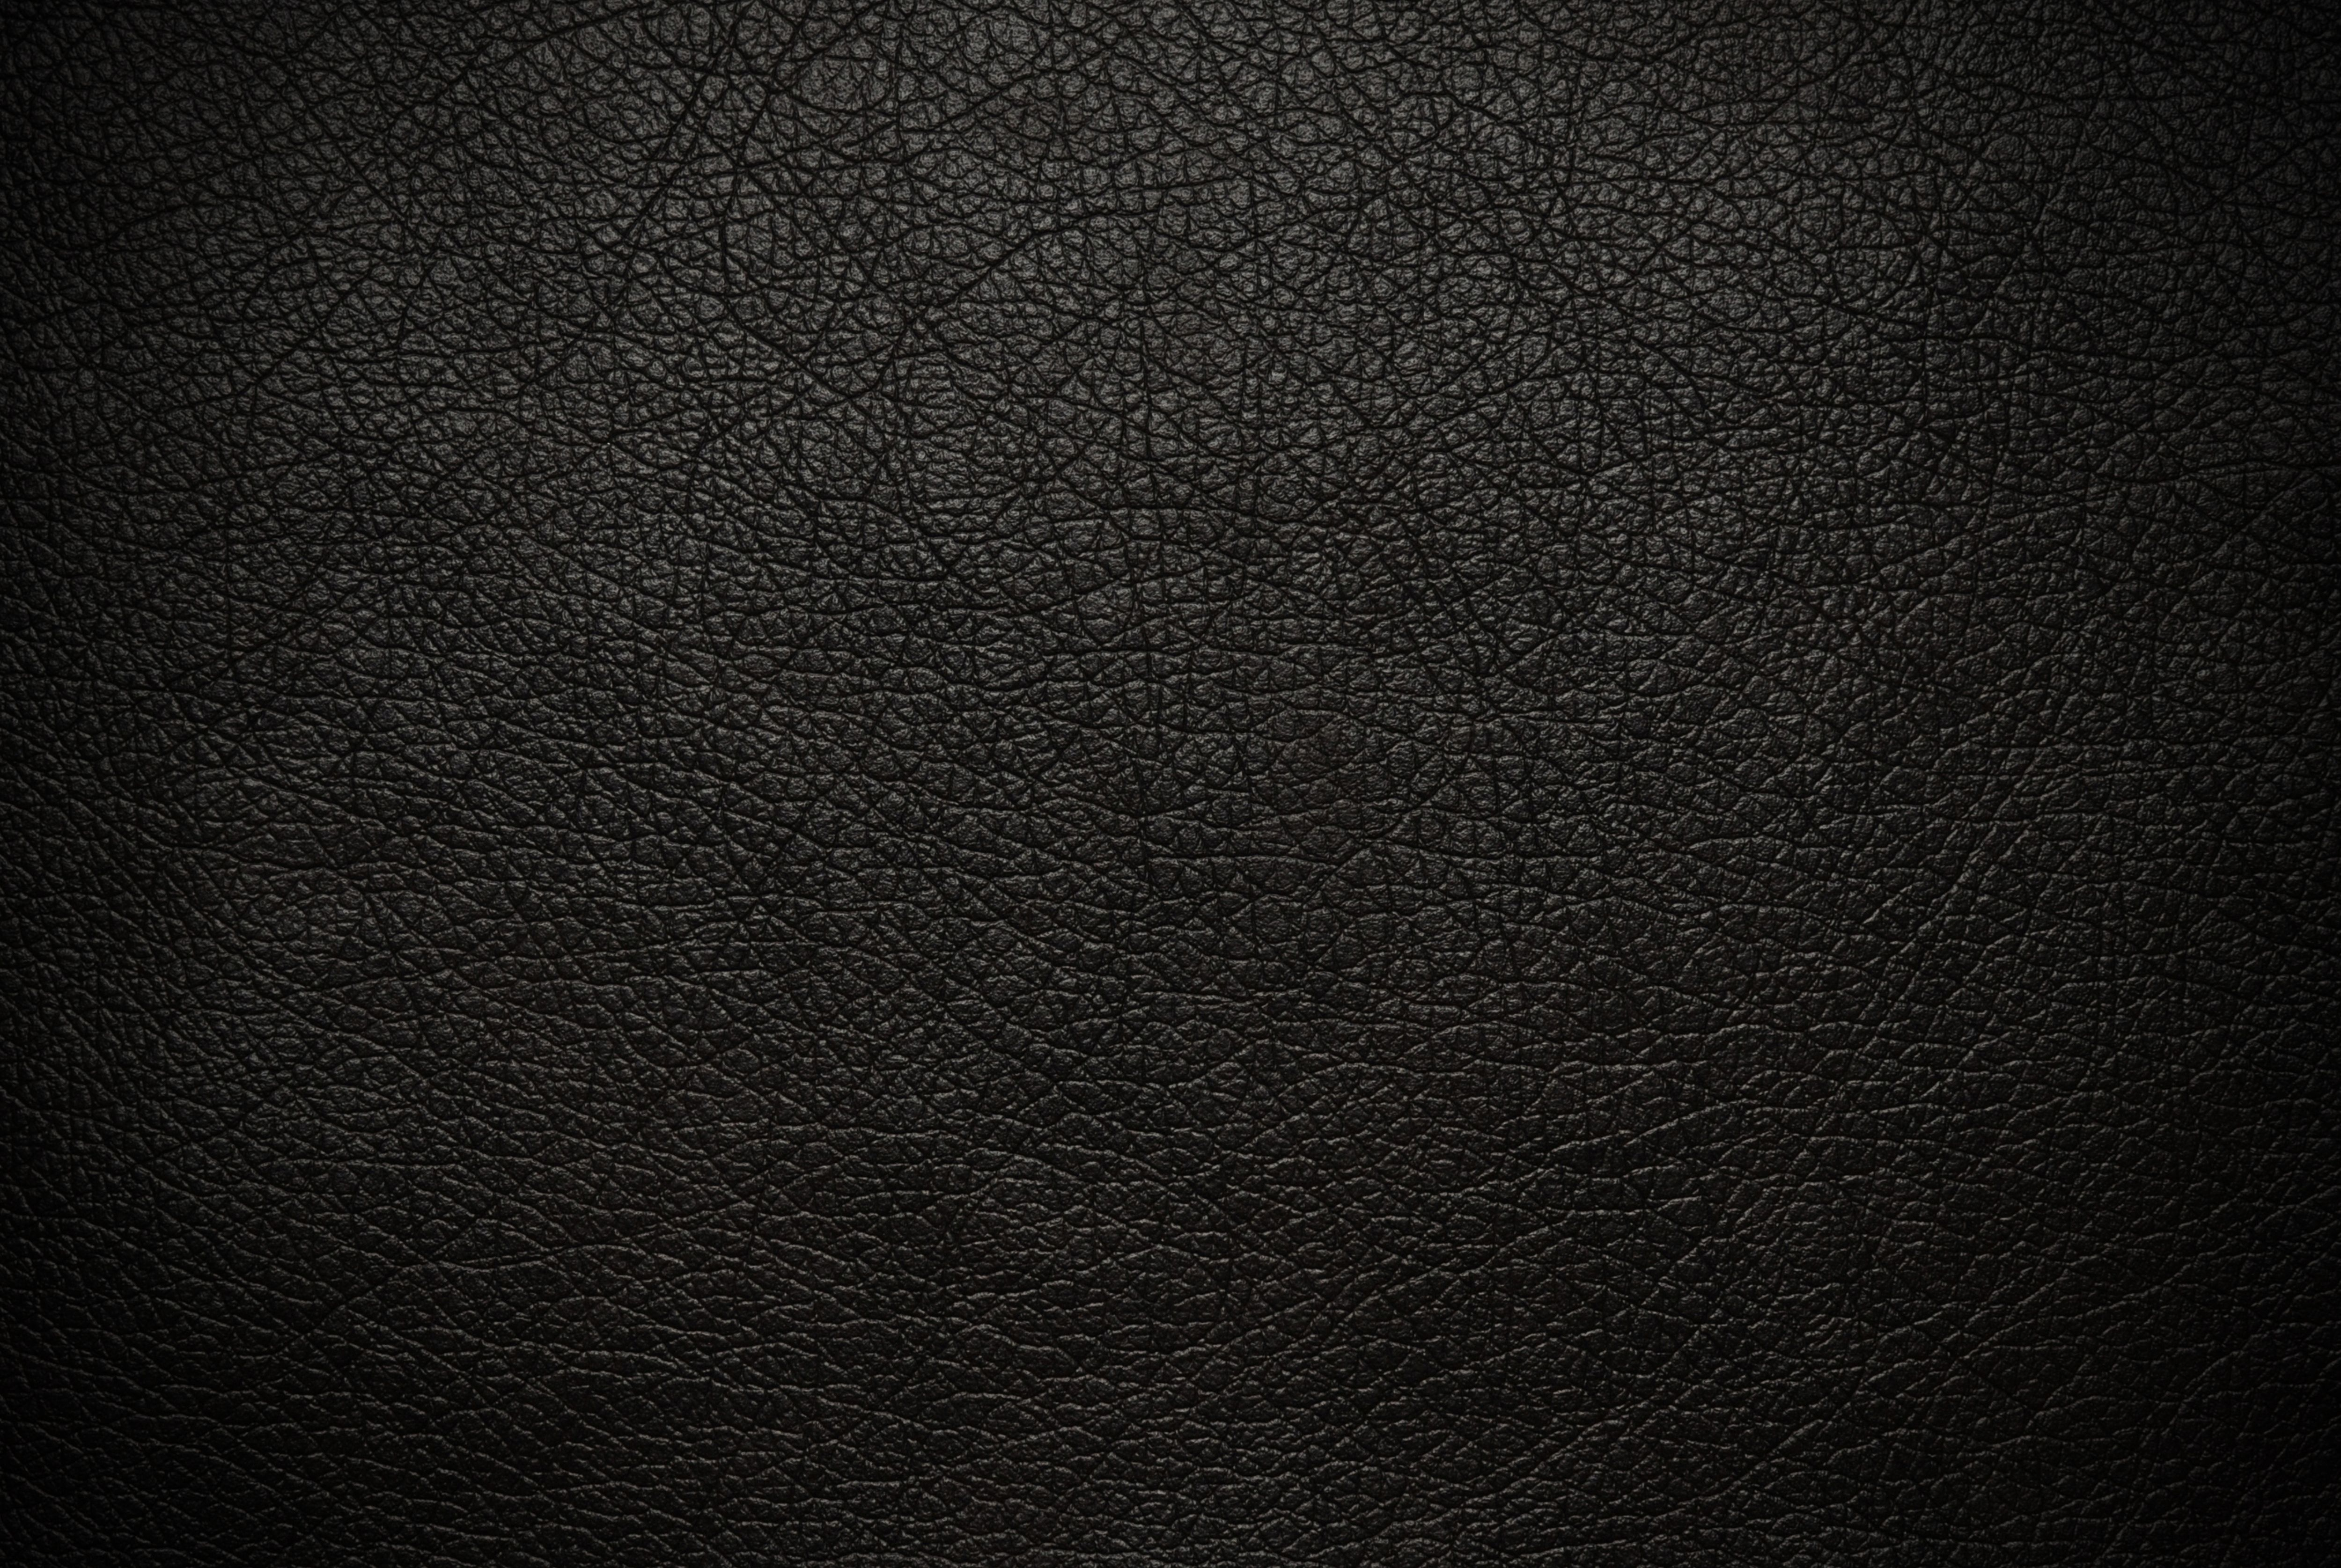 Leather, black, cracked, background, texture wallpaper ...